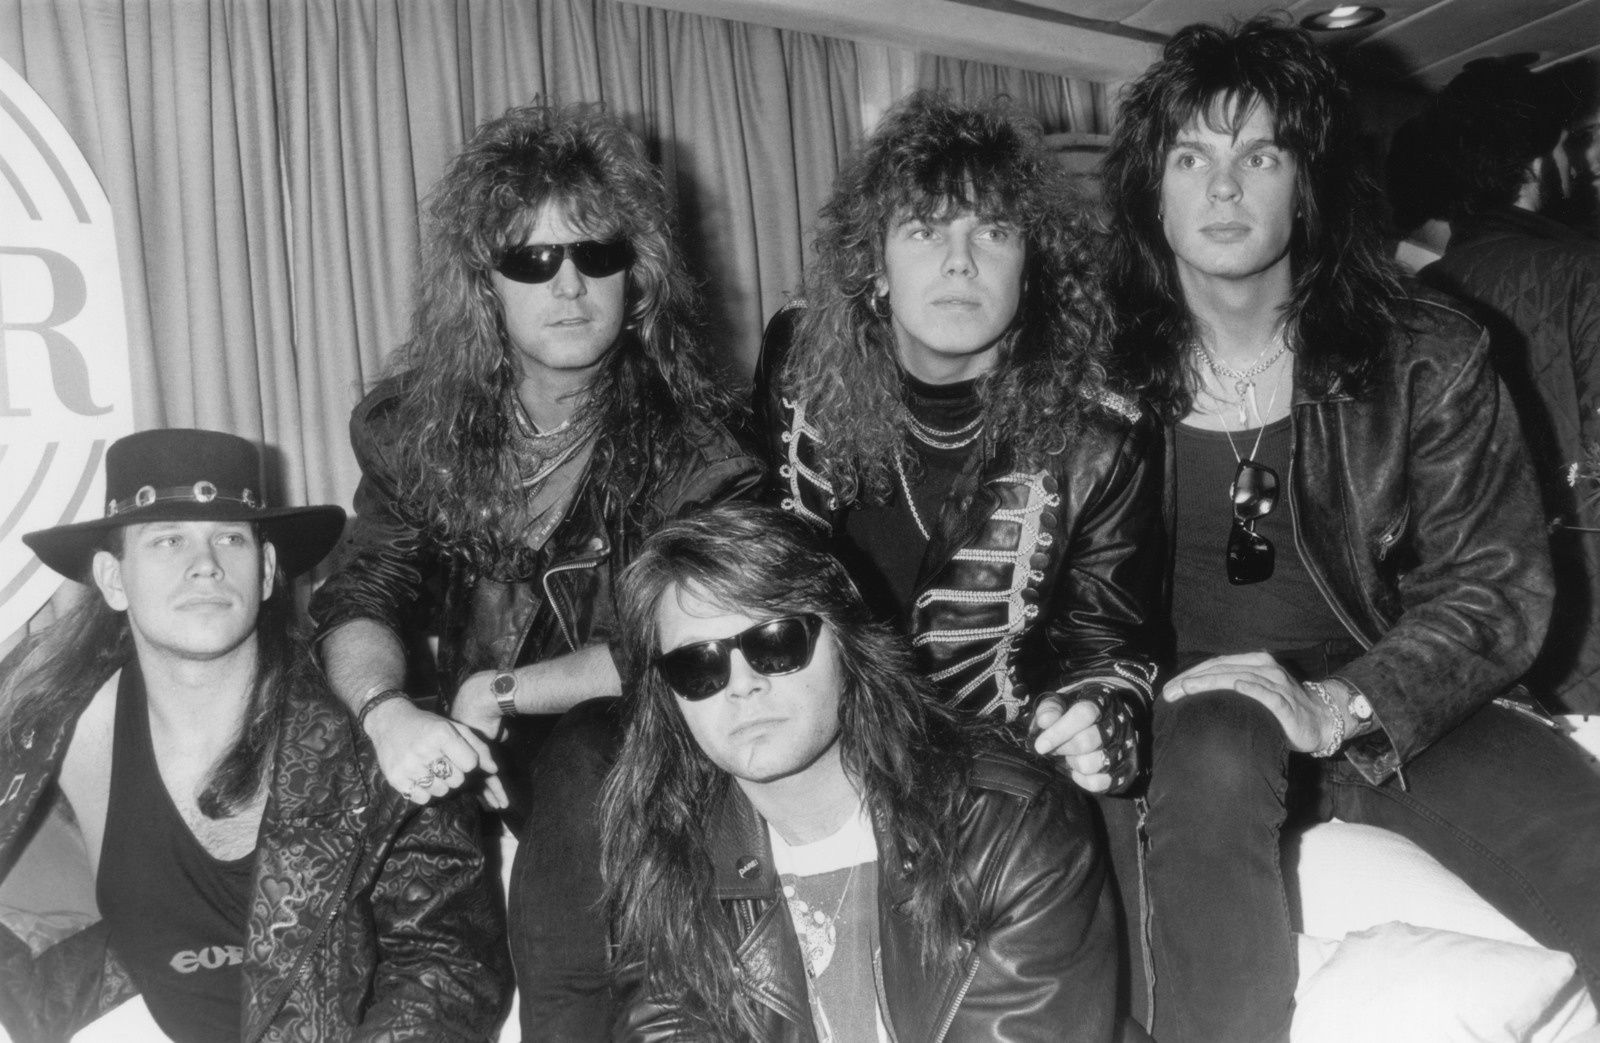 Joey Tempest - 1992 - Europe - credit: Getty images